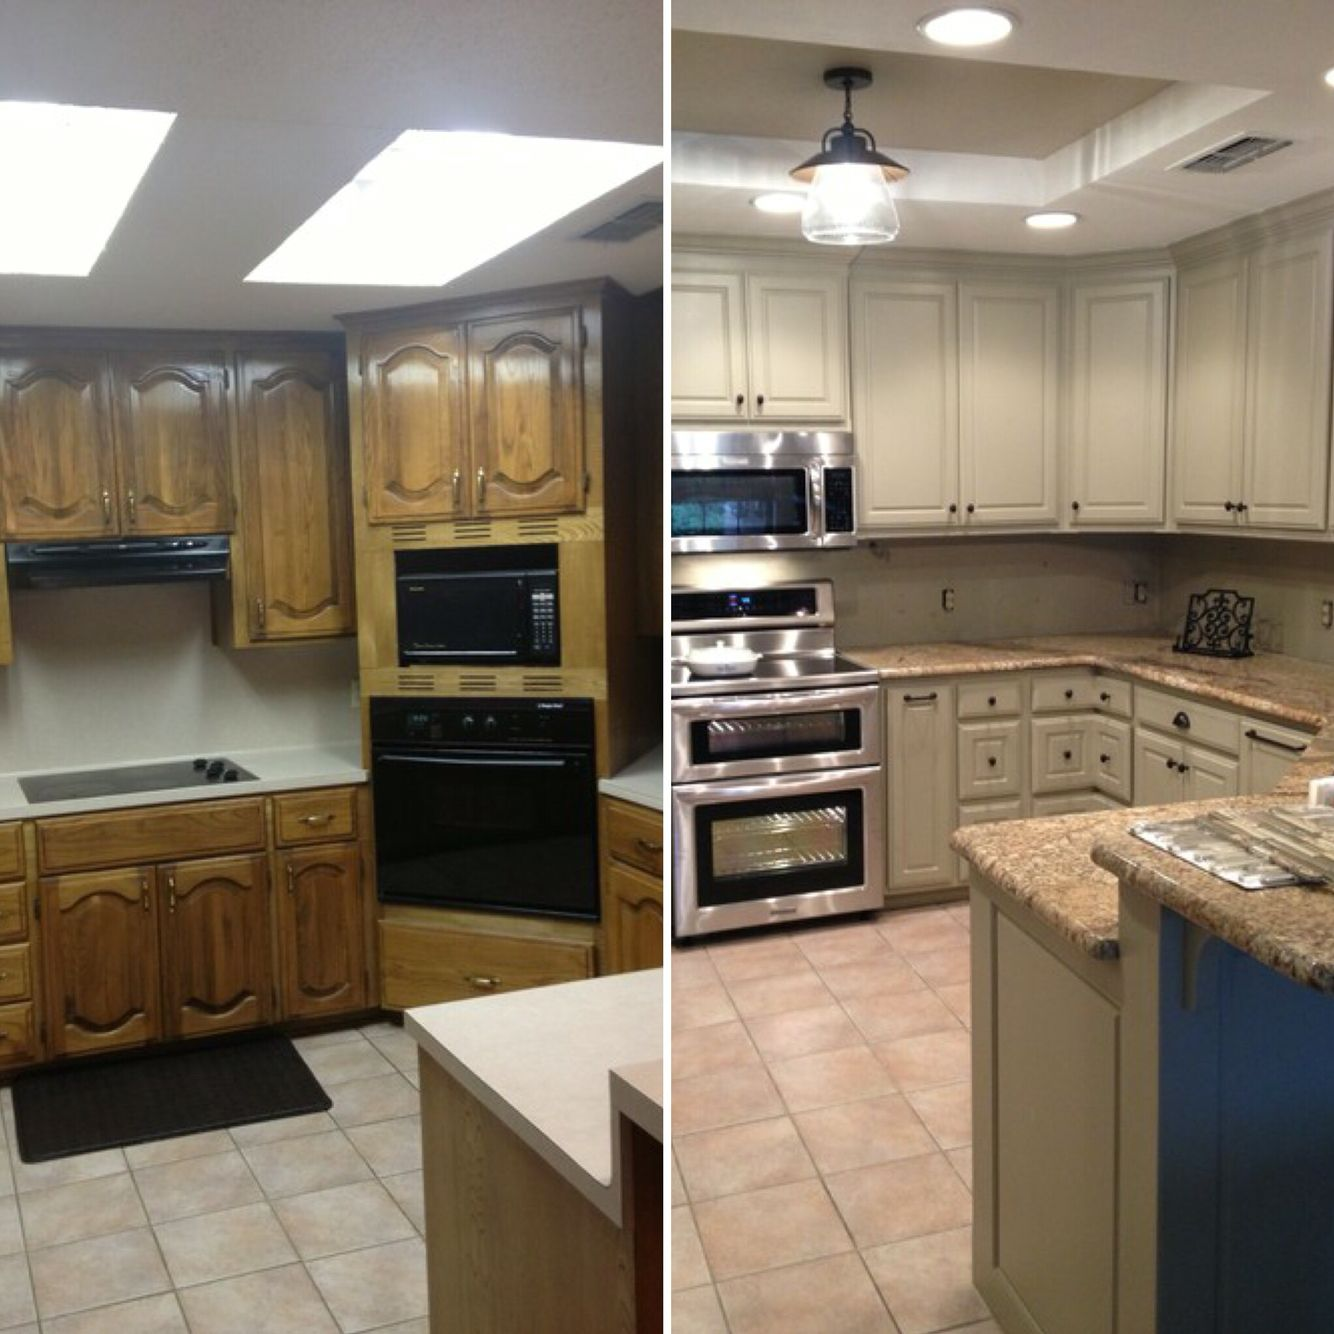 fluorescent kitchen lighting when remove RECESSED fluorescent light box how to fix keep the existing side moulding patch the hole then put moulding on INSIDE of box